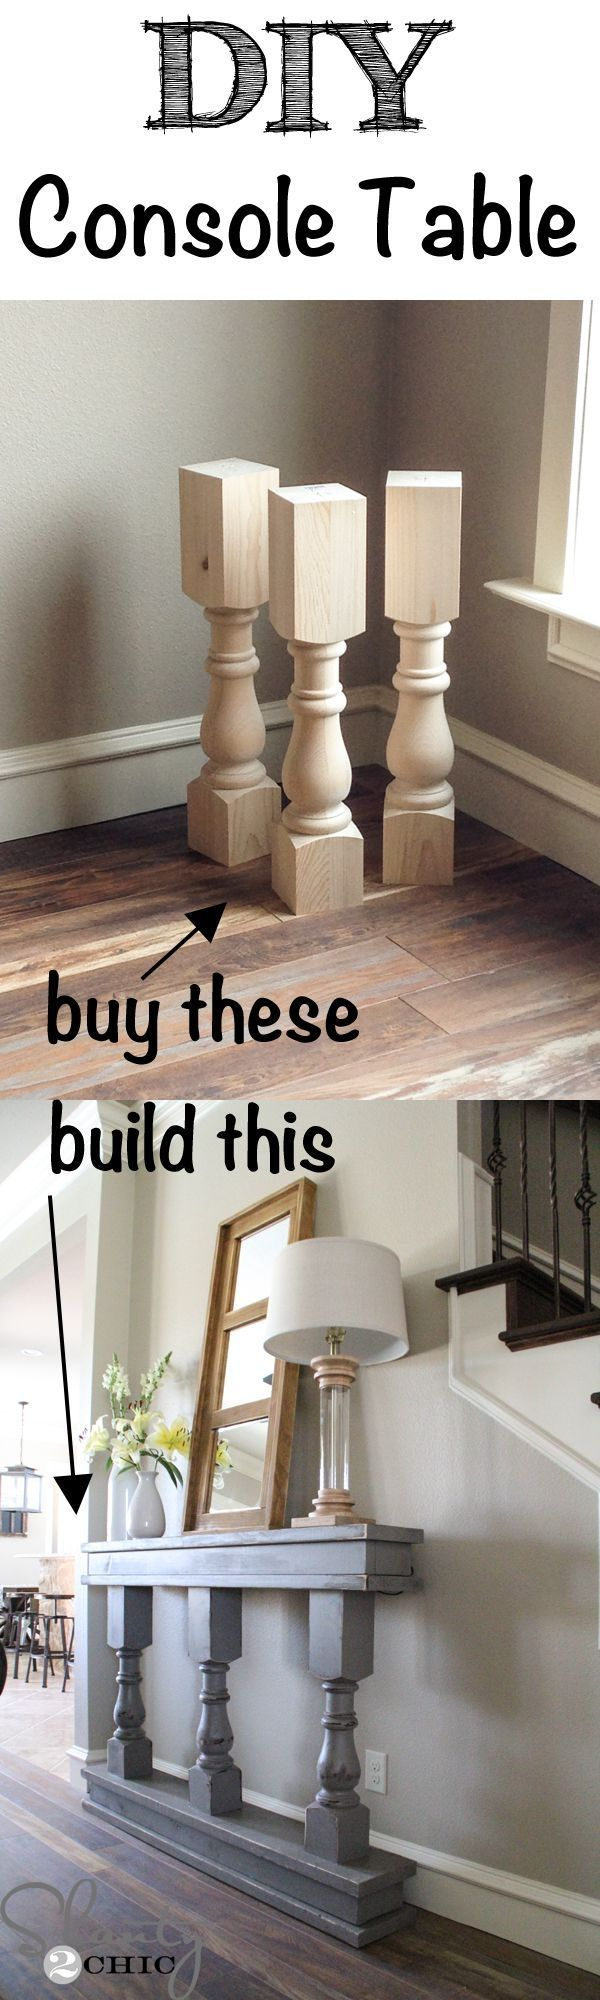 Super easy DIY Console Table! Click for FREE Plans! by decojen3456